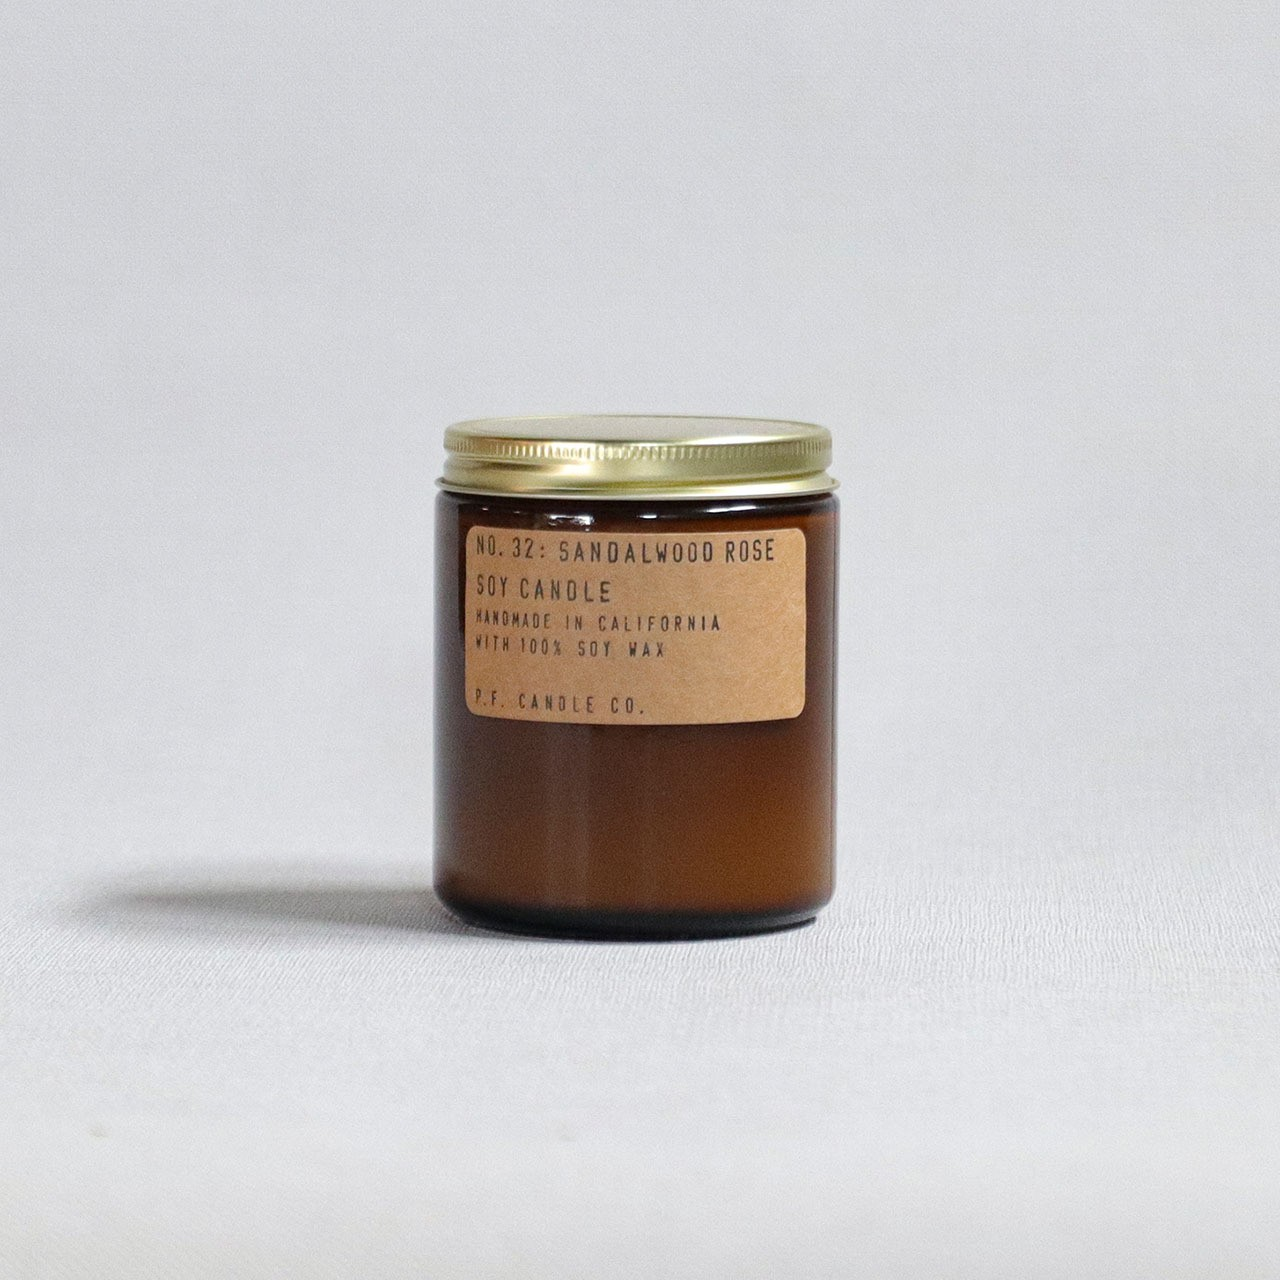 P.F.Candle Co. 7.2oz Soy Wax Candle